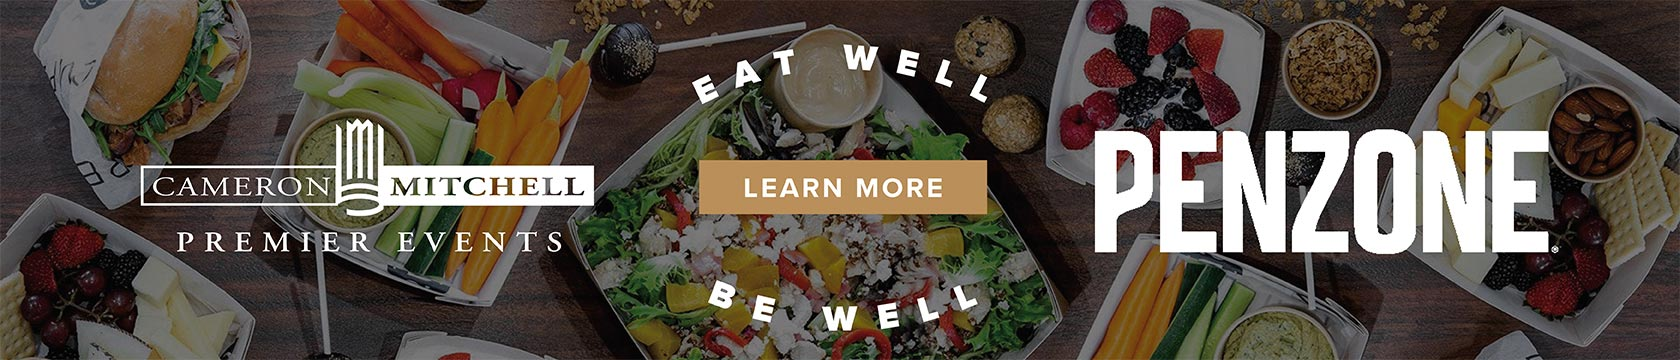 Eat Well Be Well - learn more about the partnership between Cameron Mitchell Premier Events and Penzone